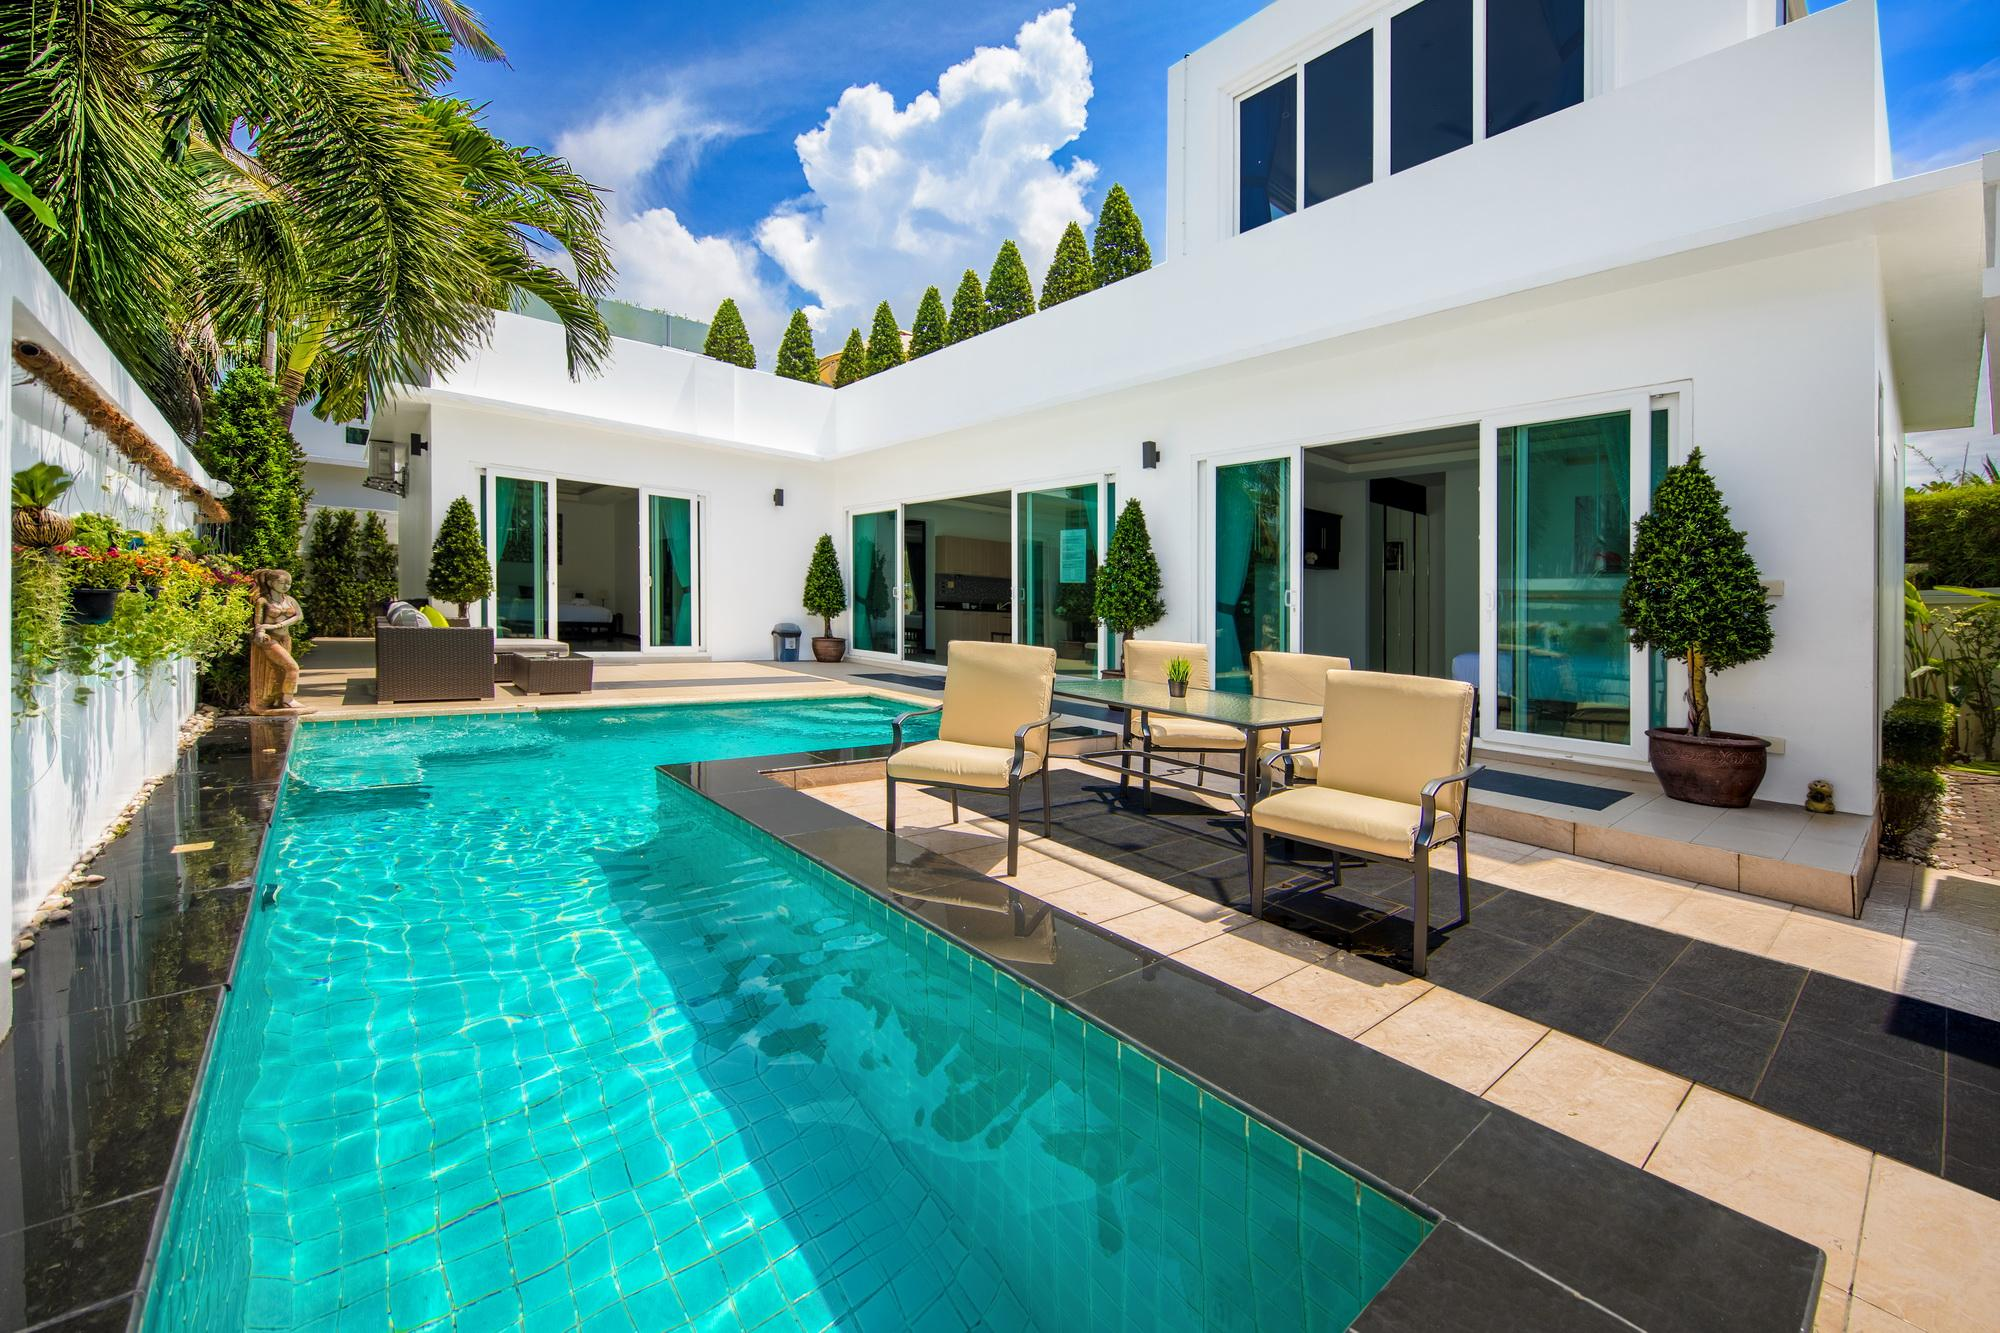 Best Villa With Jacuzzi And Pool In Pattaya